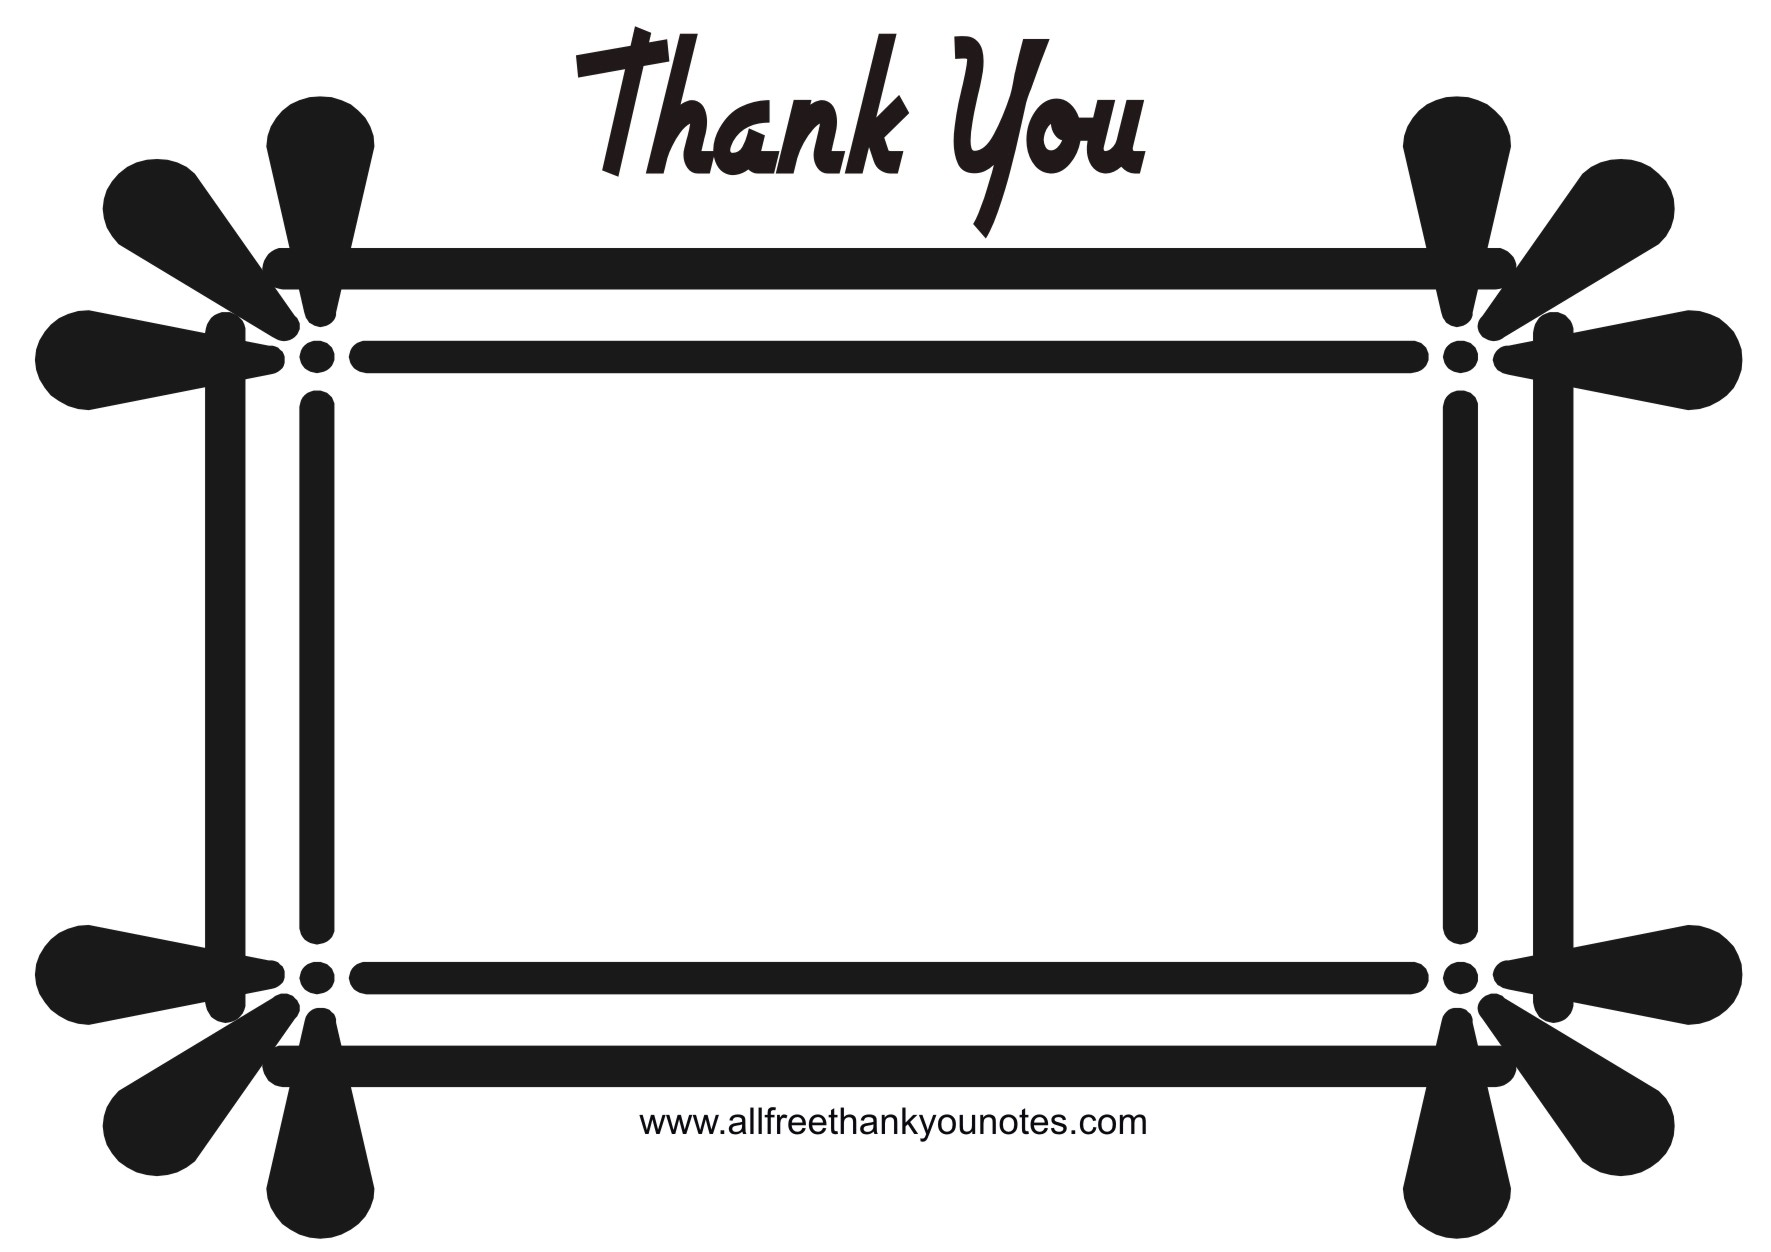 Thank You Black And White Clipart Panda -Thank You Black And White Clipart Panda Free Clipart Images-6